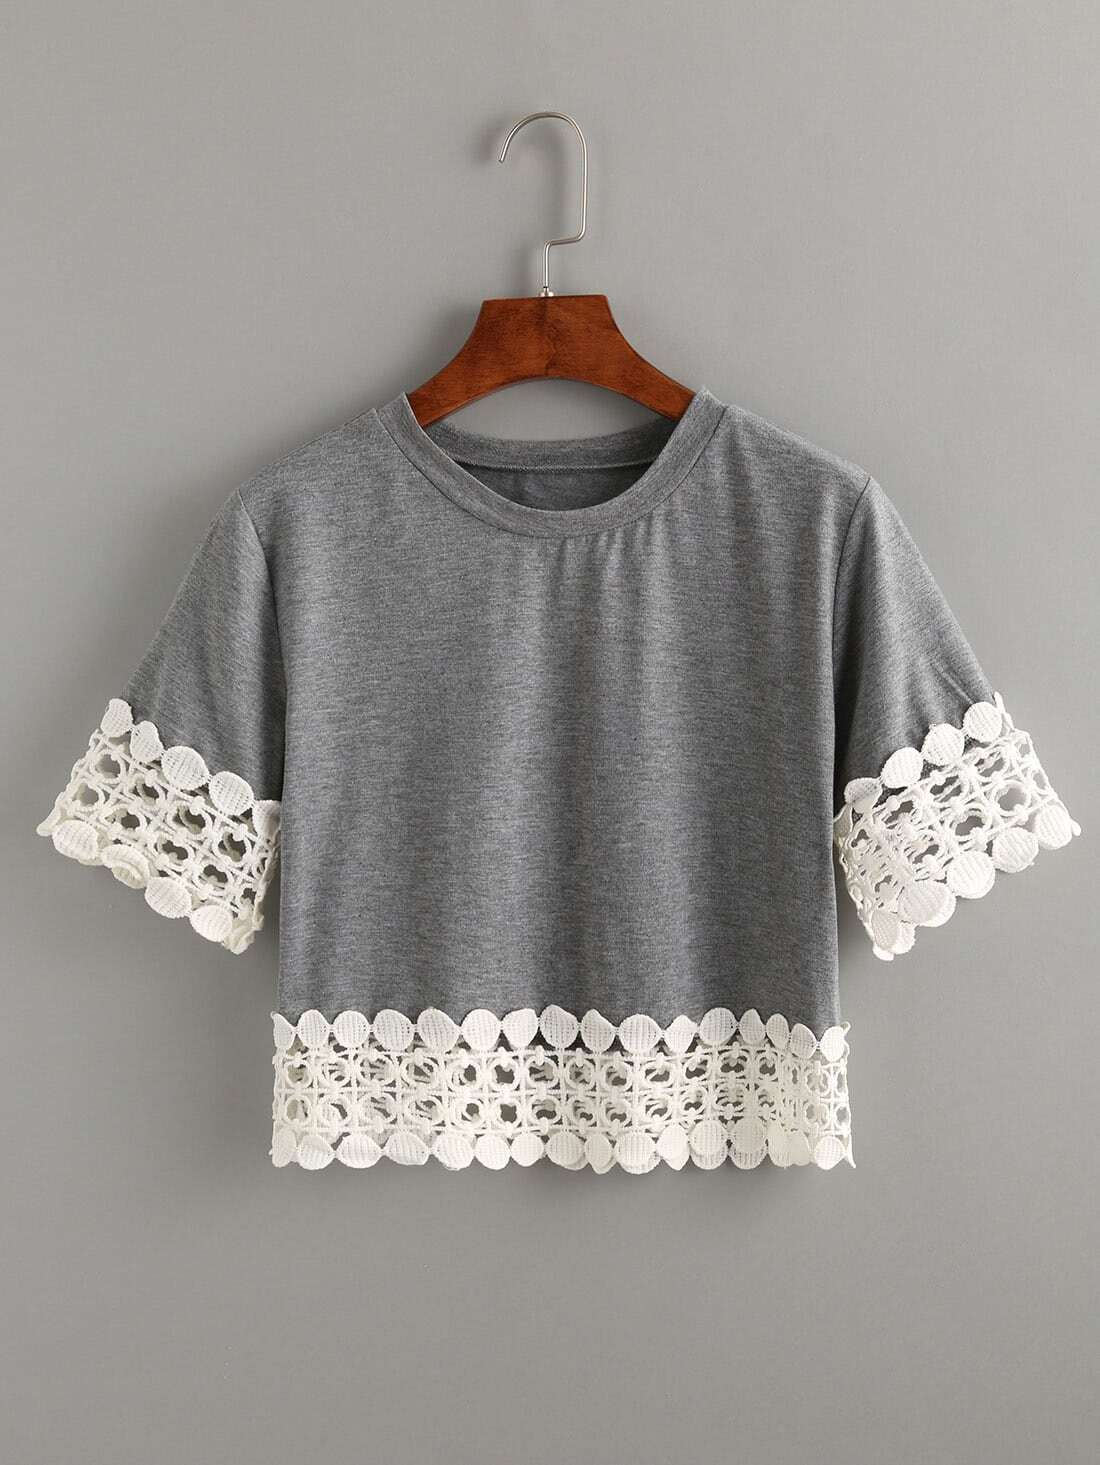 Crocheting T Shirts : Grey Crochet Trimmed Crop T-shirt -SheIn(Sheinside)